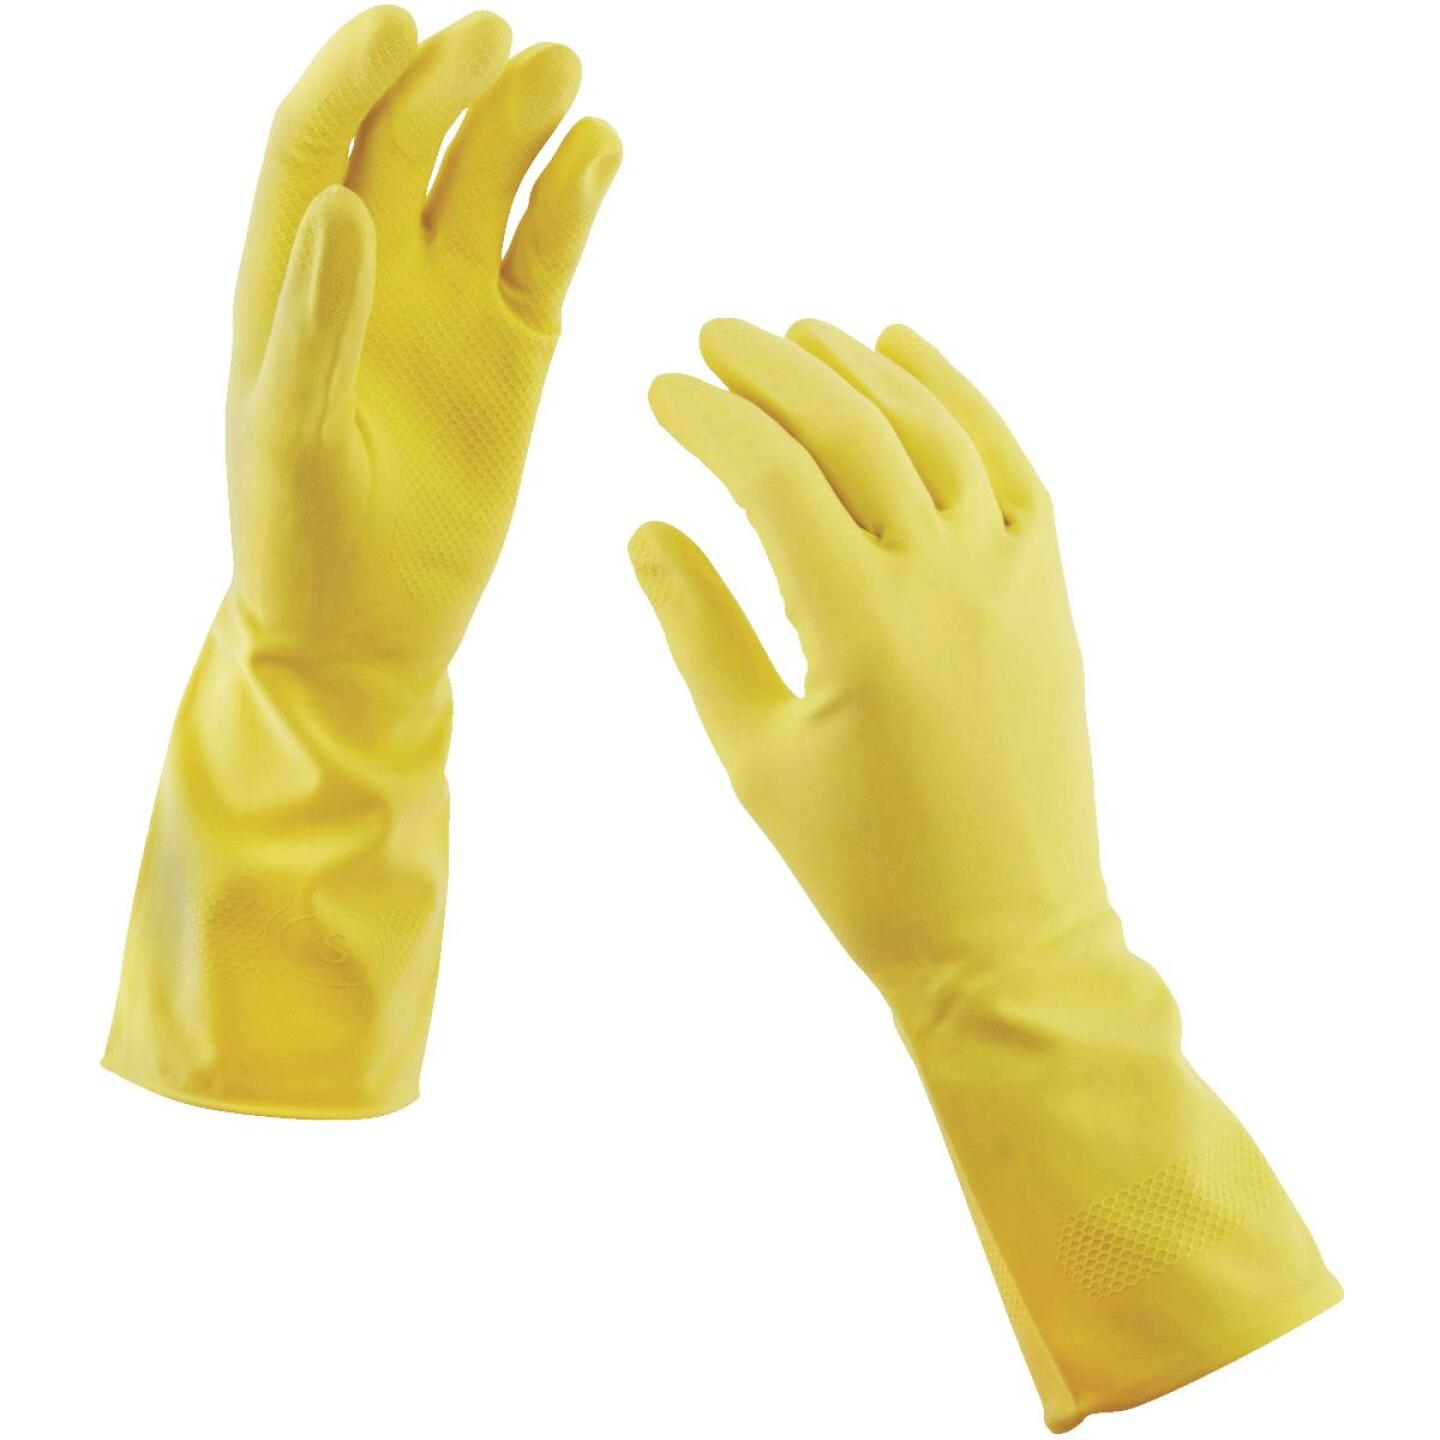 Soft Scrub Large Latex Rubber Glove (2-Pack) Image 2